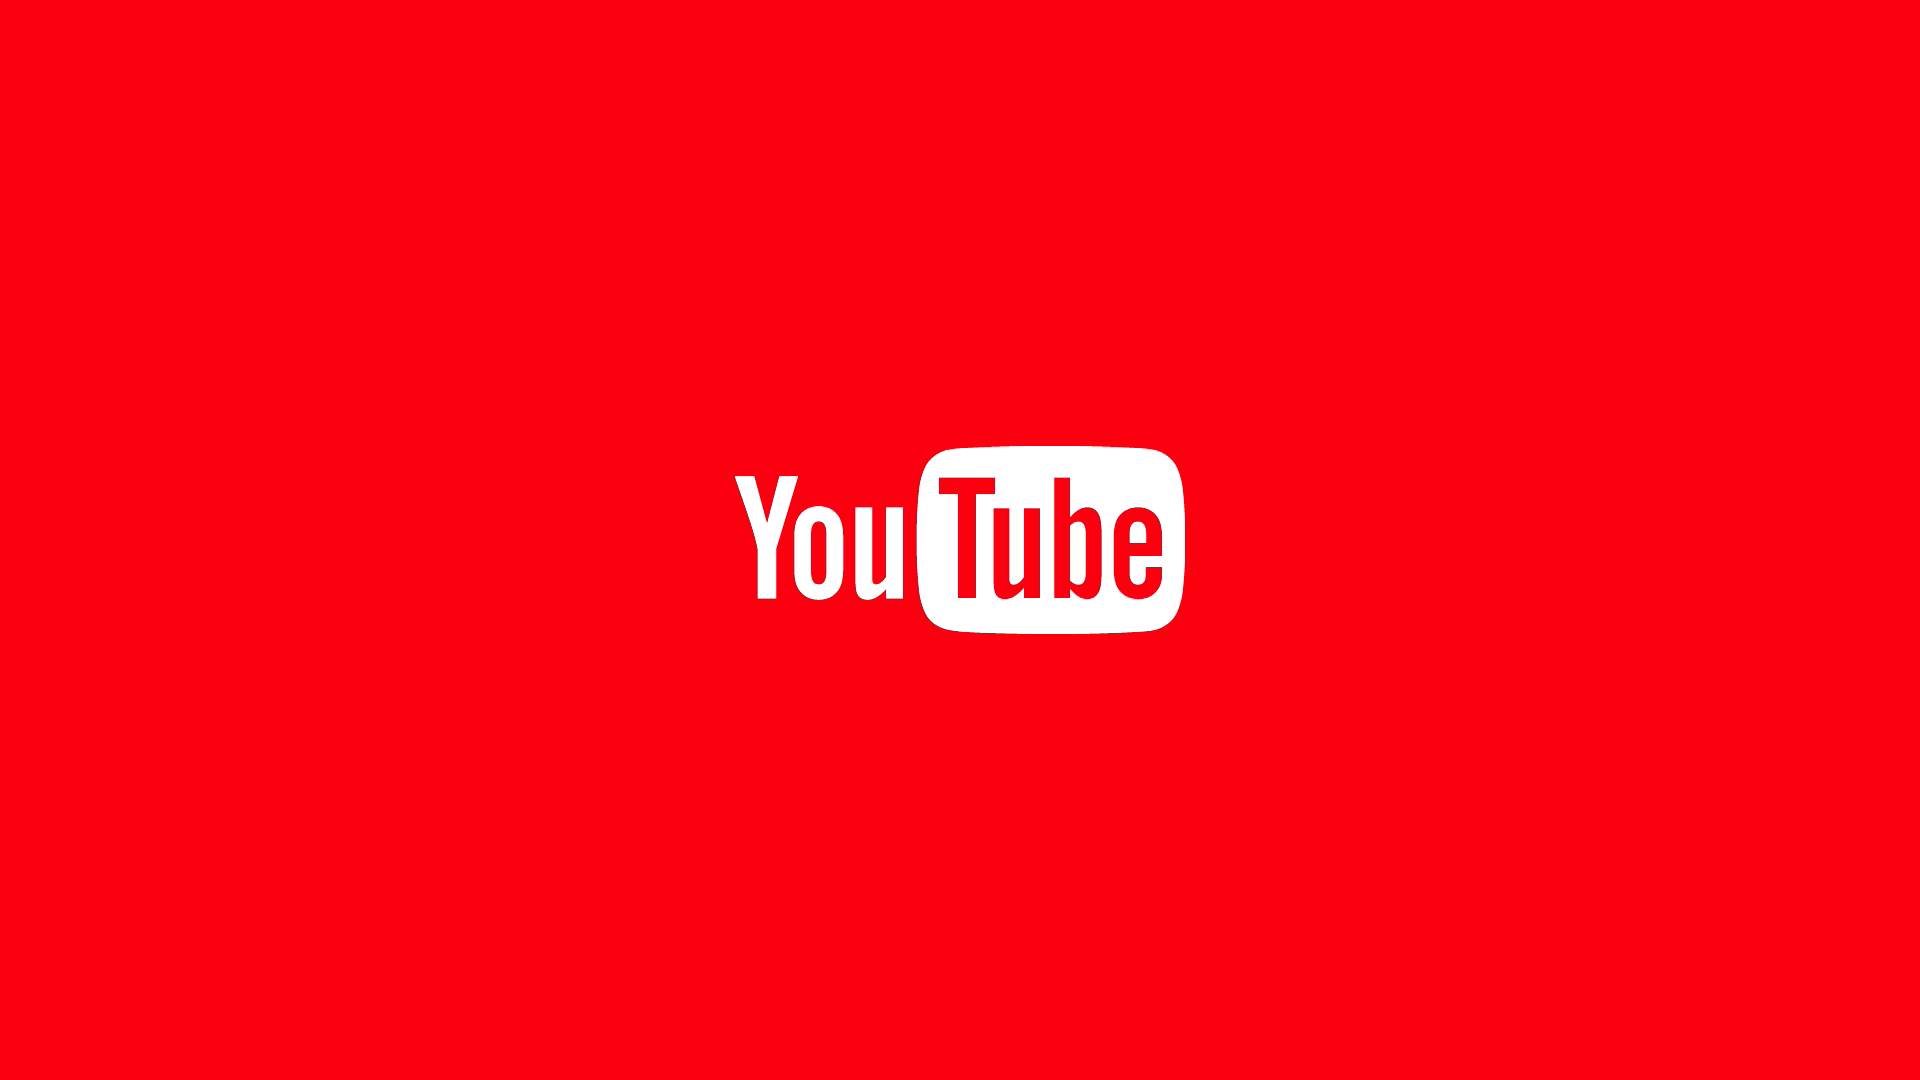 youtube logo wallpaper hd 62898